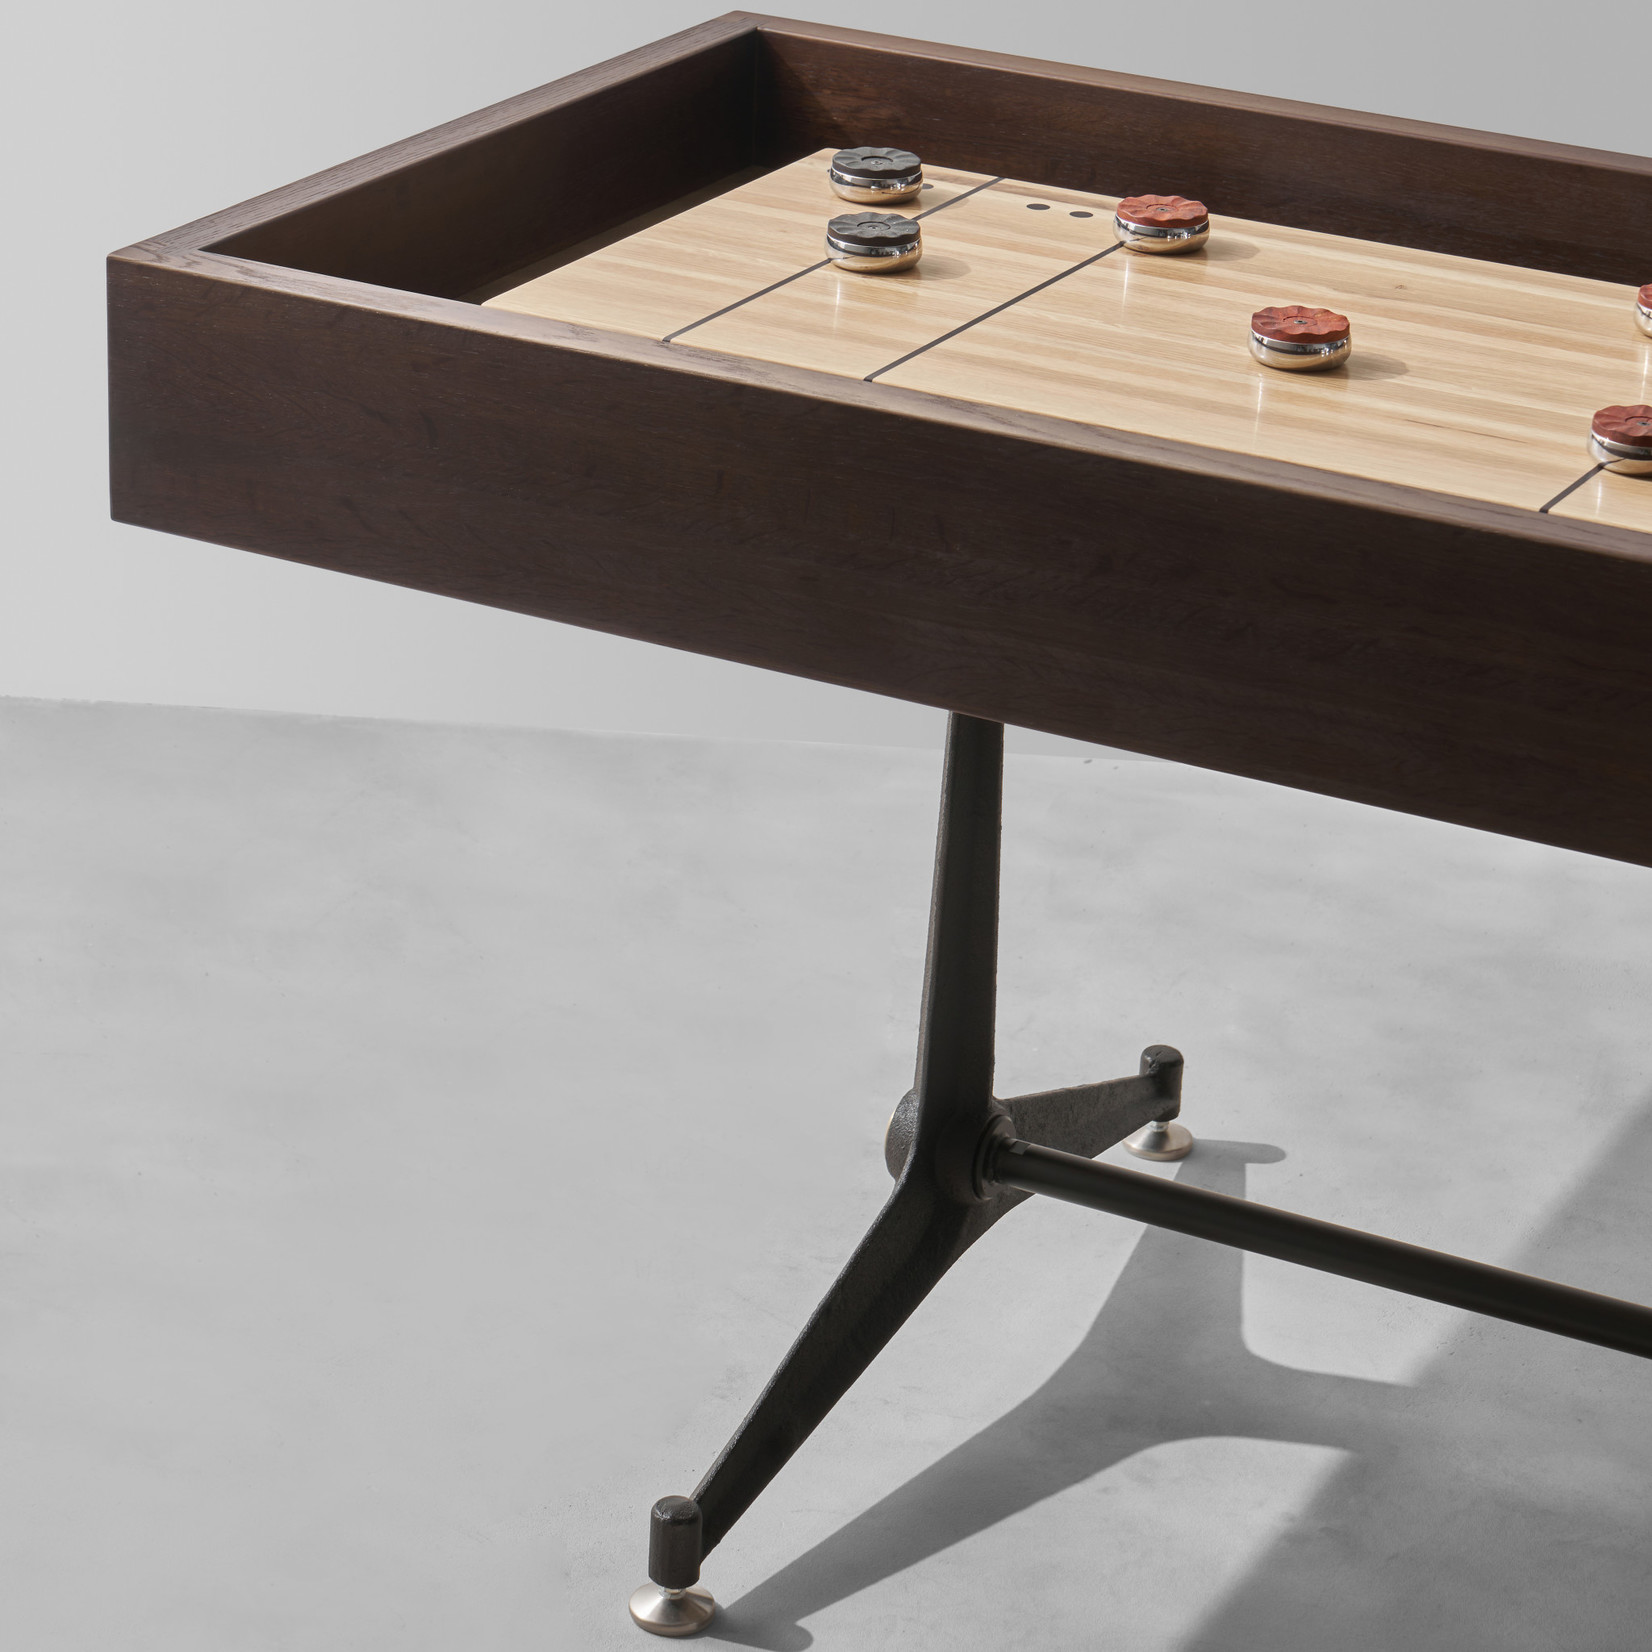 DISTRICT EIGHT SHUFFLEBOARD TABLE LARGE